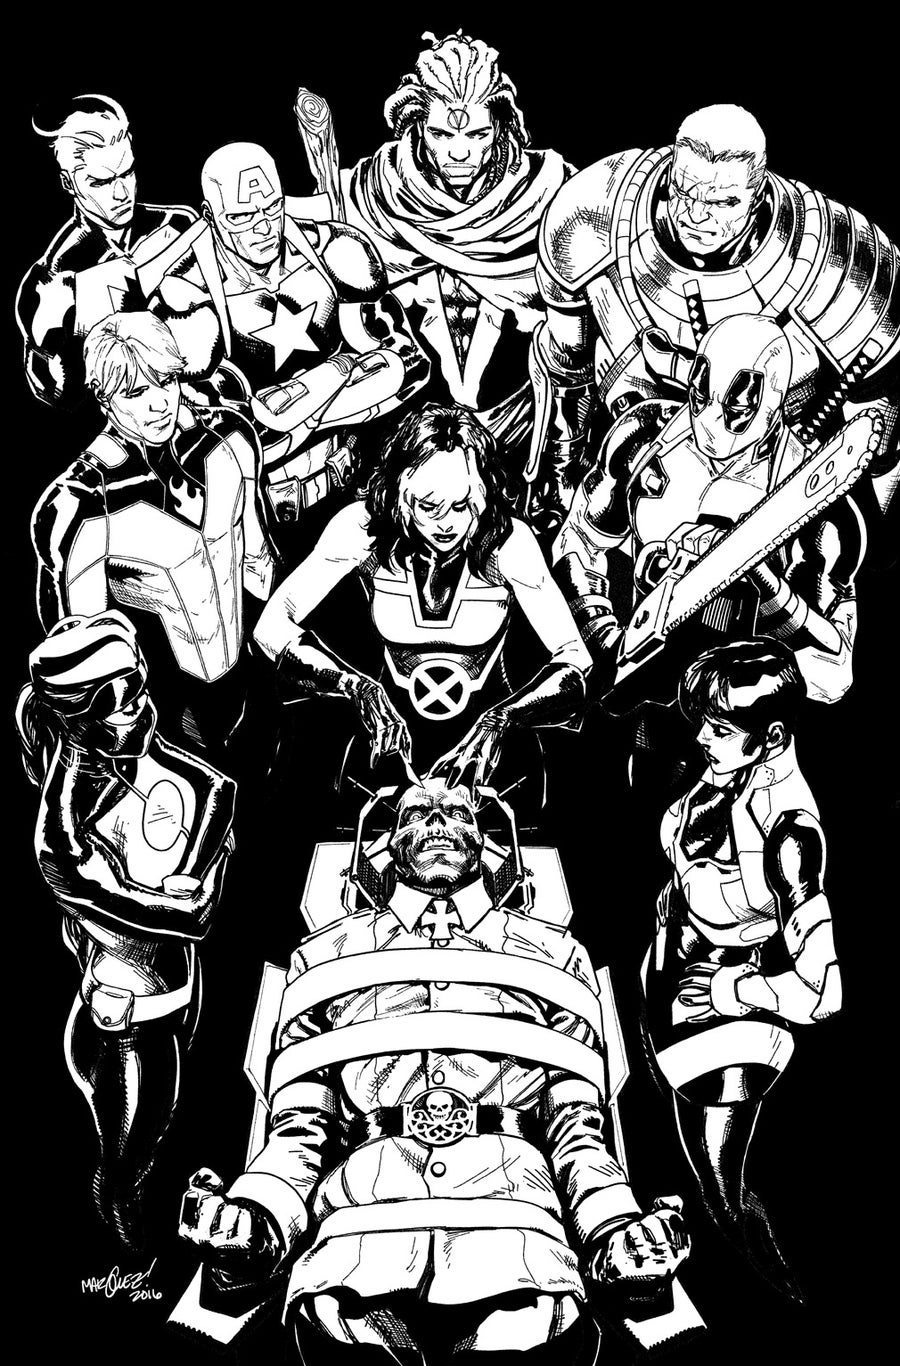 Image of UNCANNY AVENGERS #22 COVER ARTIST'S PROOF